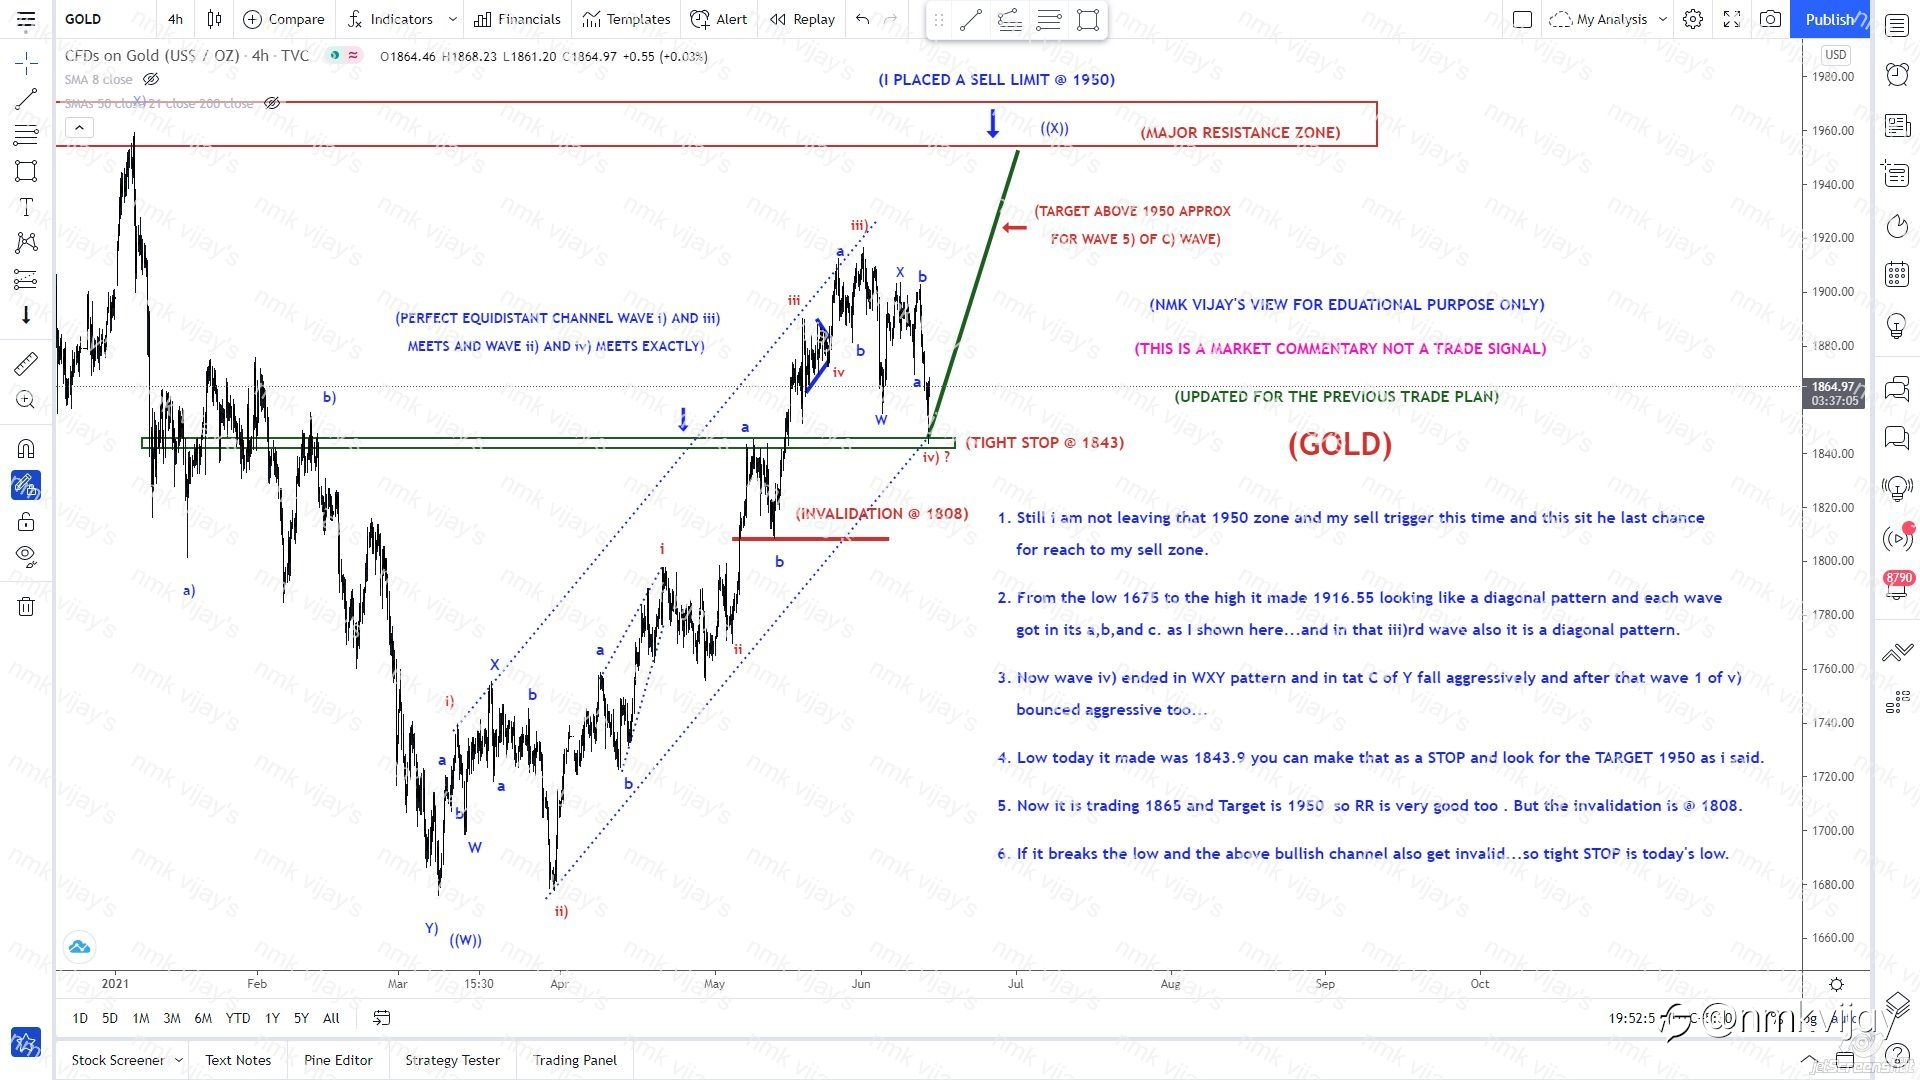 GOLD-Still valid my 1950 zone...and this could be a last chance?